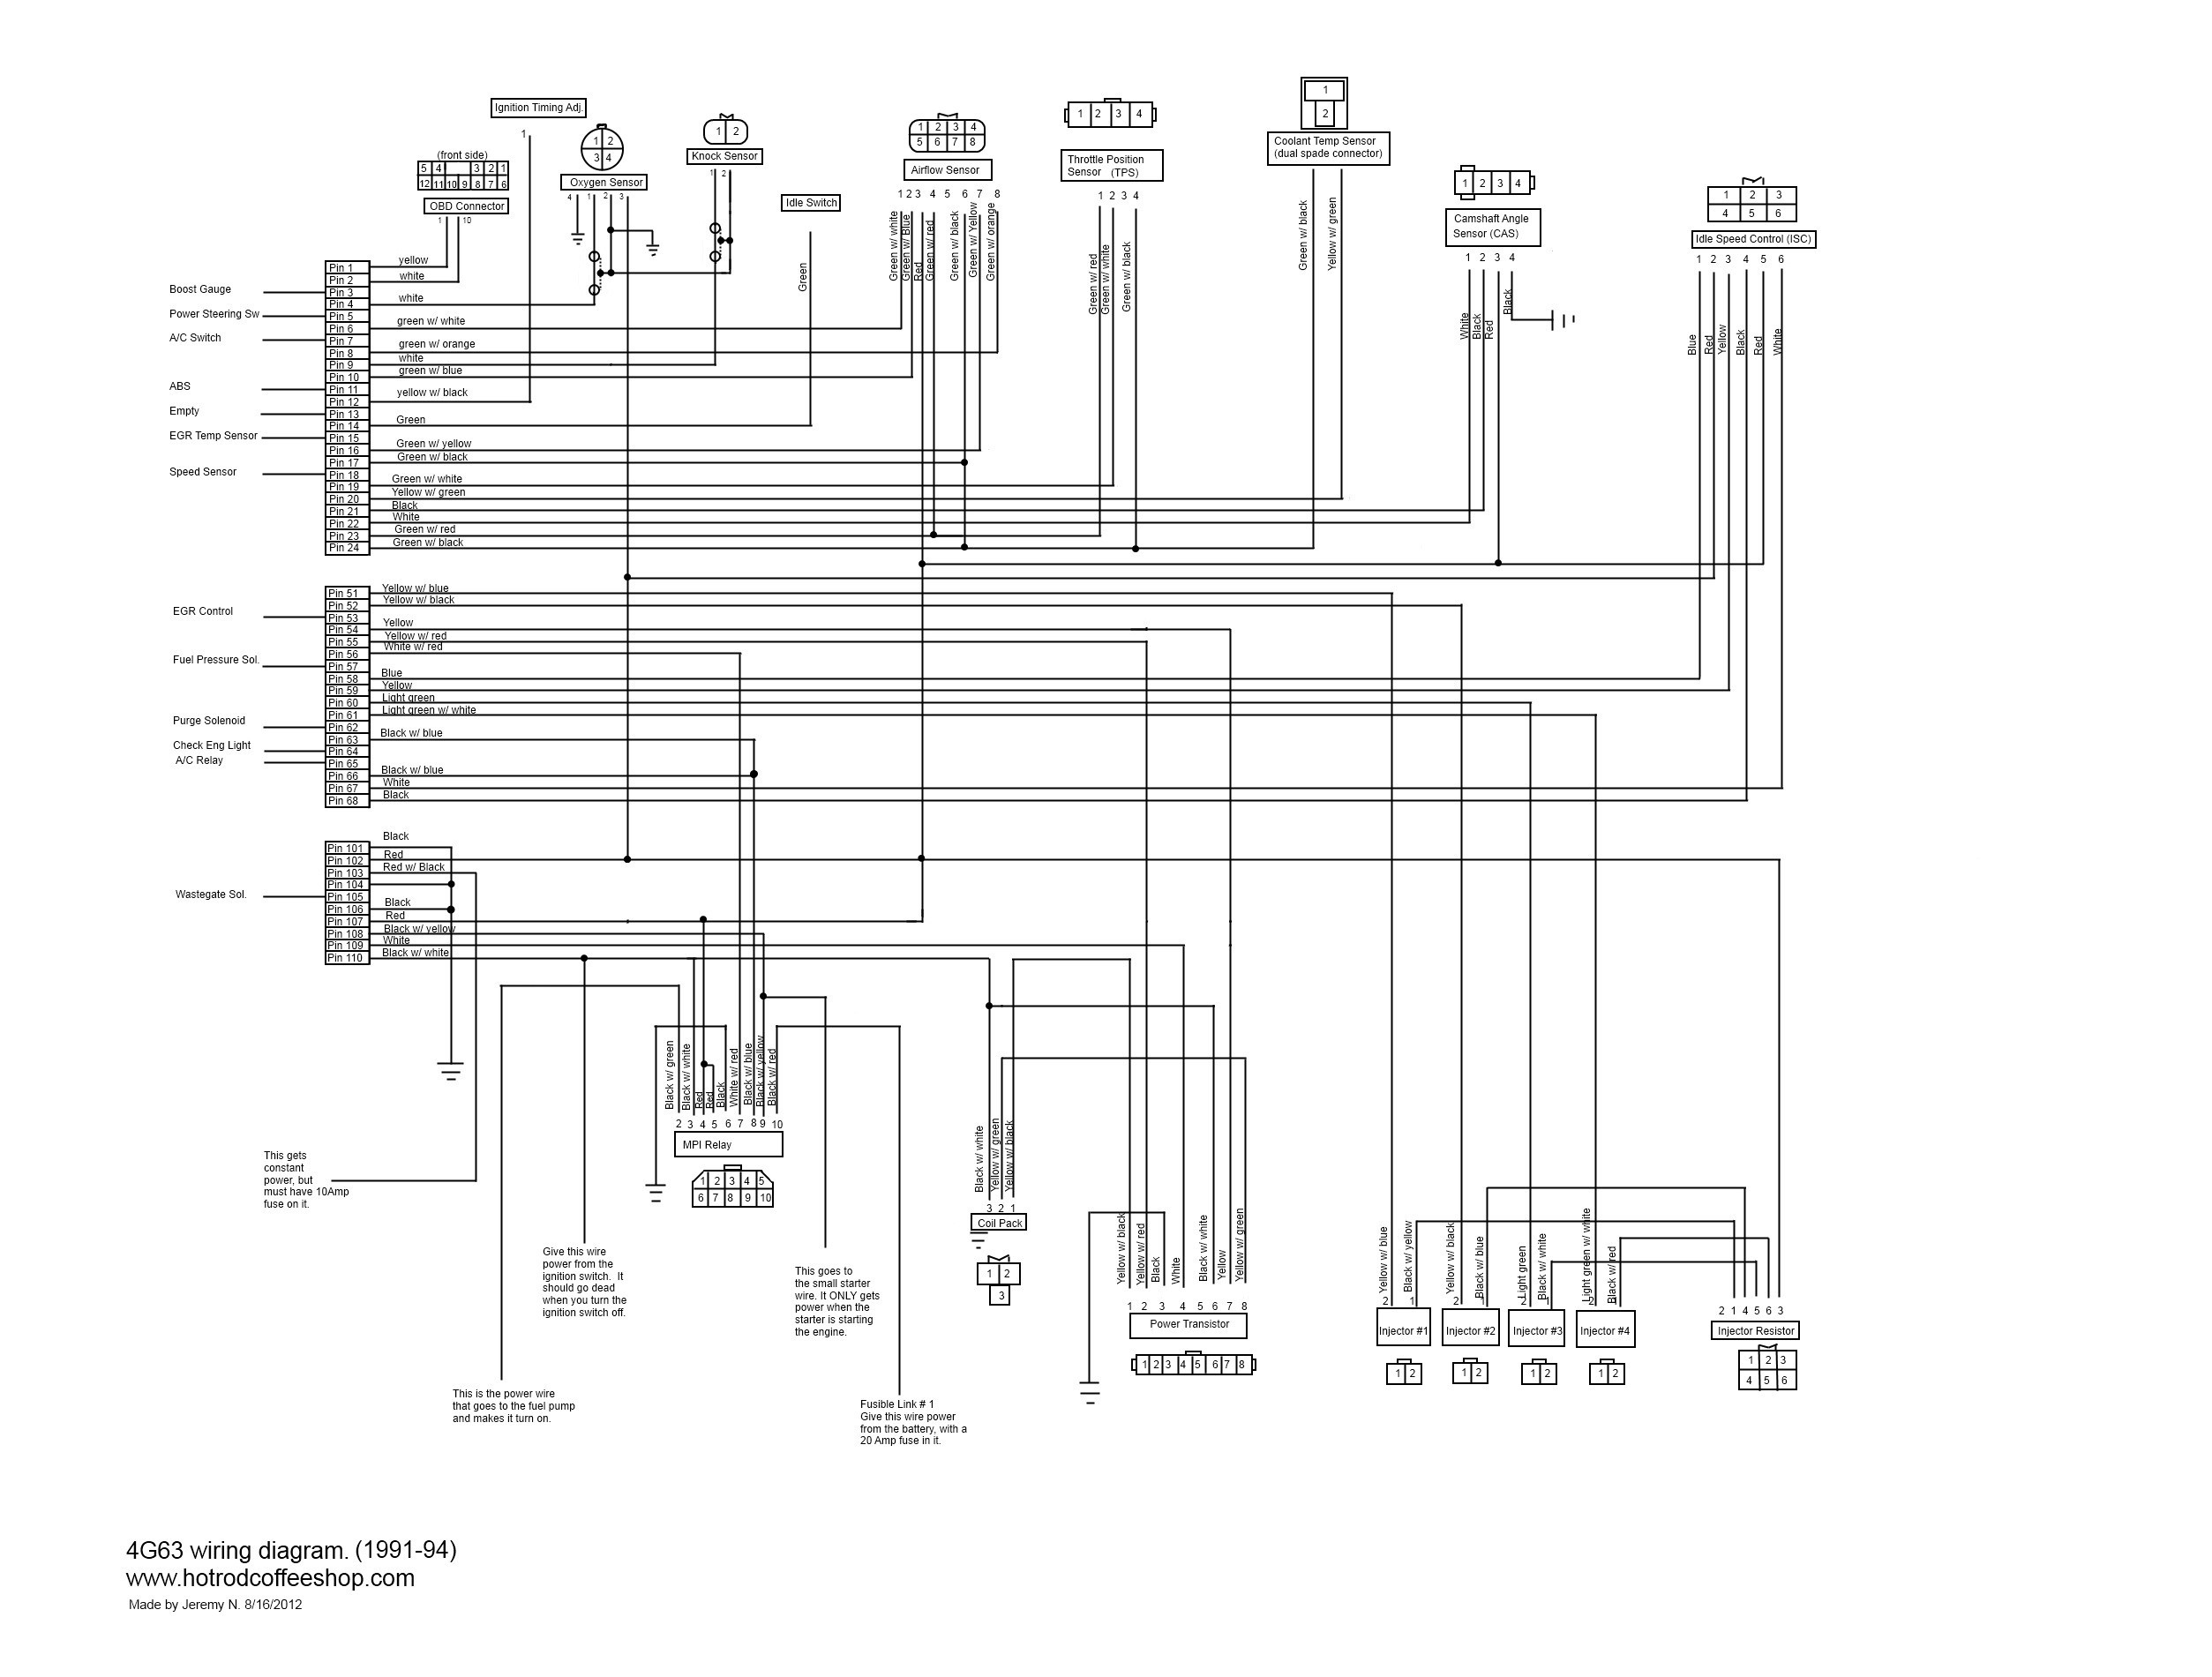 Mitsubishi Galant Ignition Wiring Diagram